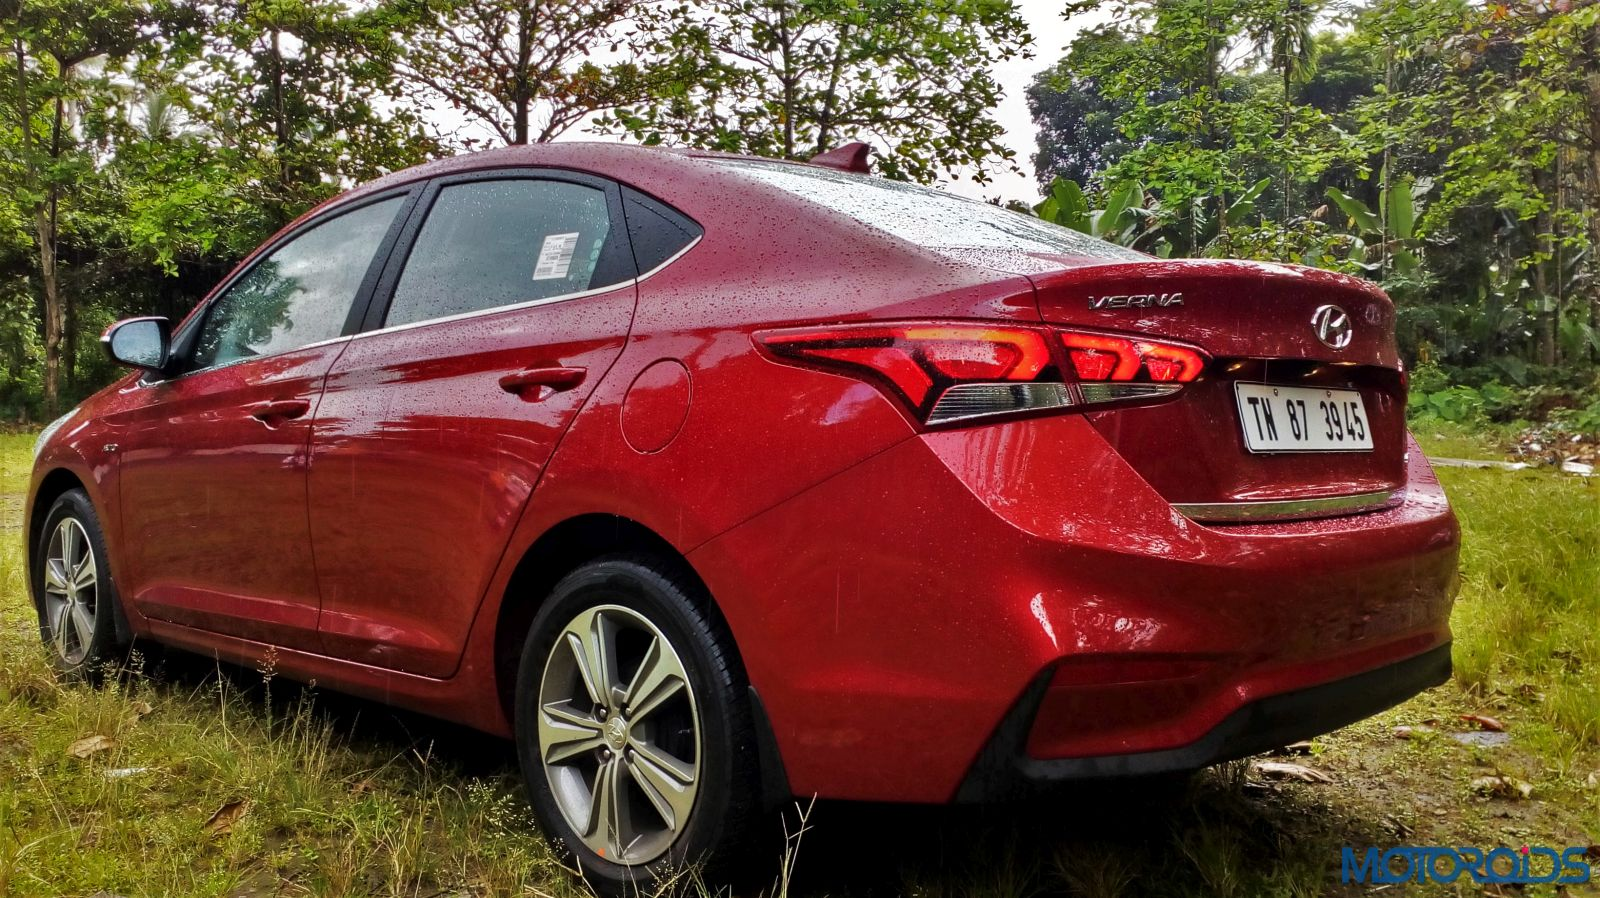 August 28, 2017-New-2017-Next-gen-Hyundai-Verna-Red-static-car-8.jpg